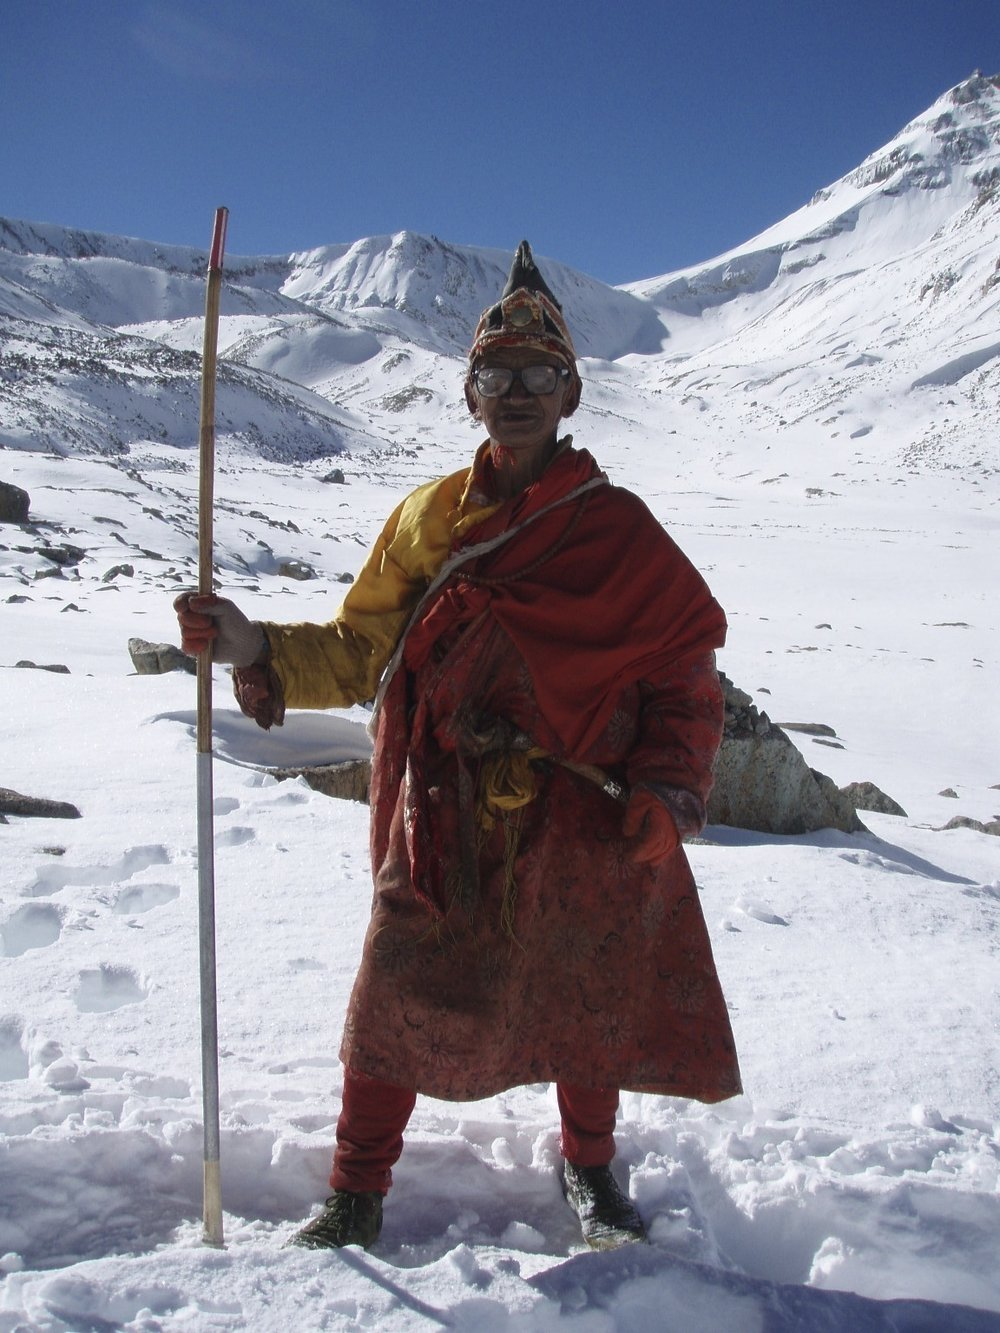 A Tibetan monk/pilgrim approaching the Dolma La Pass at 5,648m